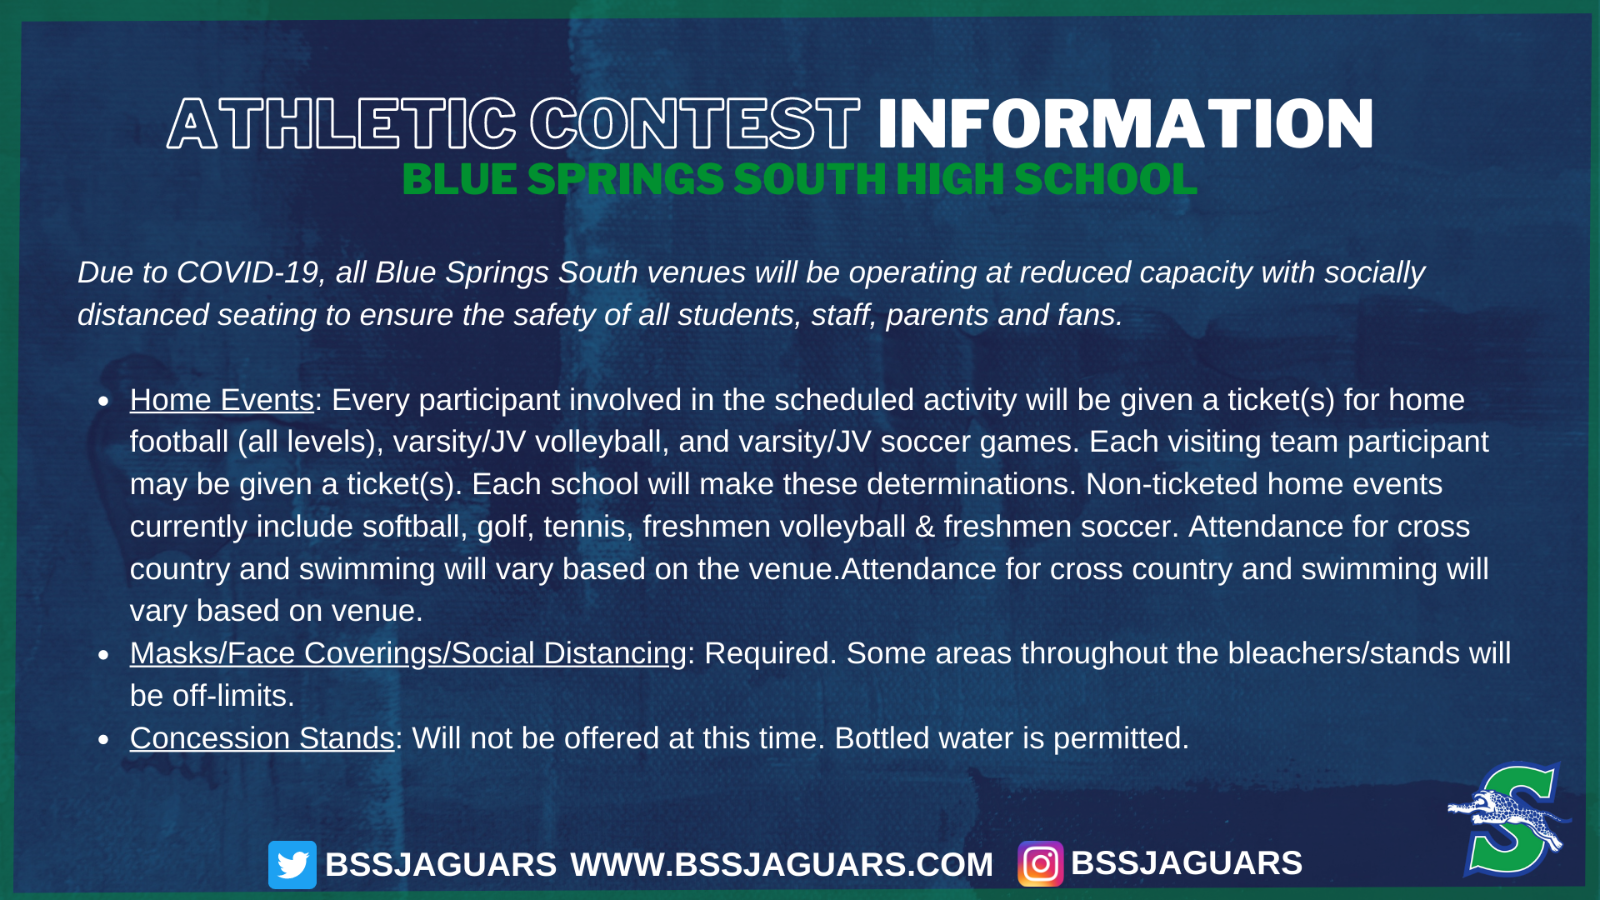 Athletic Contest Information